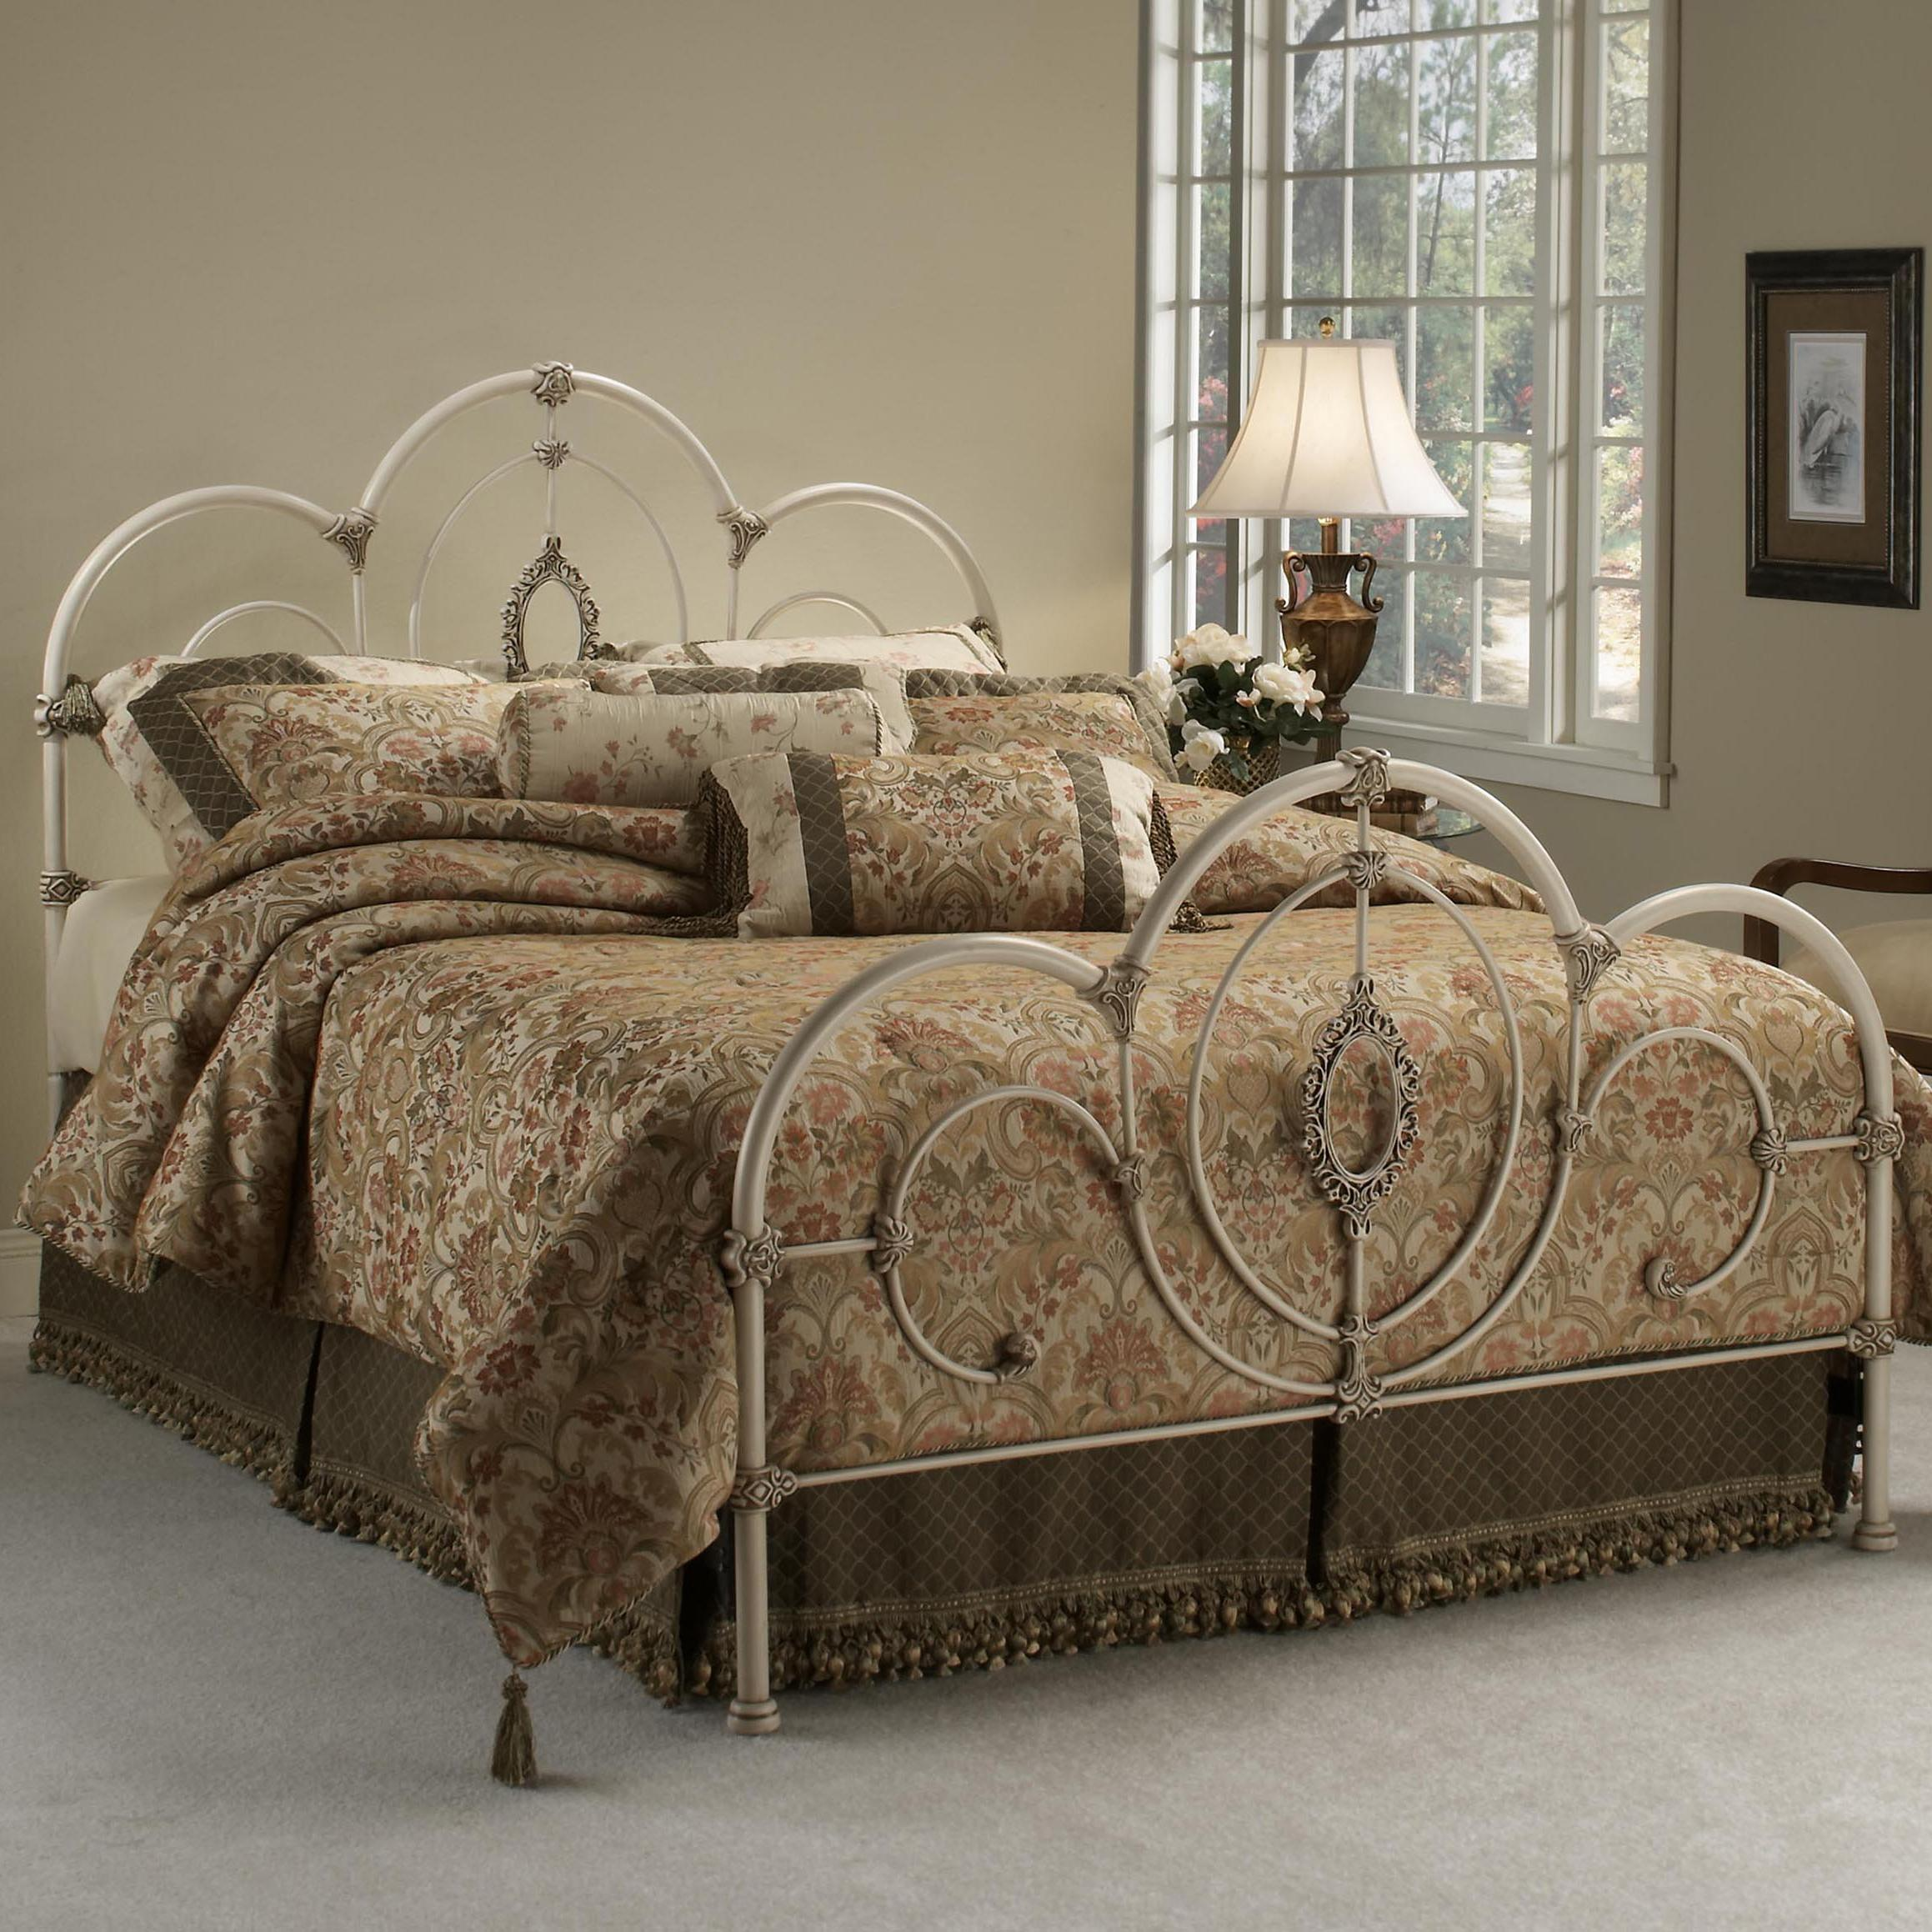 Metal Beds Queen Victoria Bed by Hillsdale at Steger's Furniture